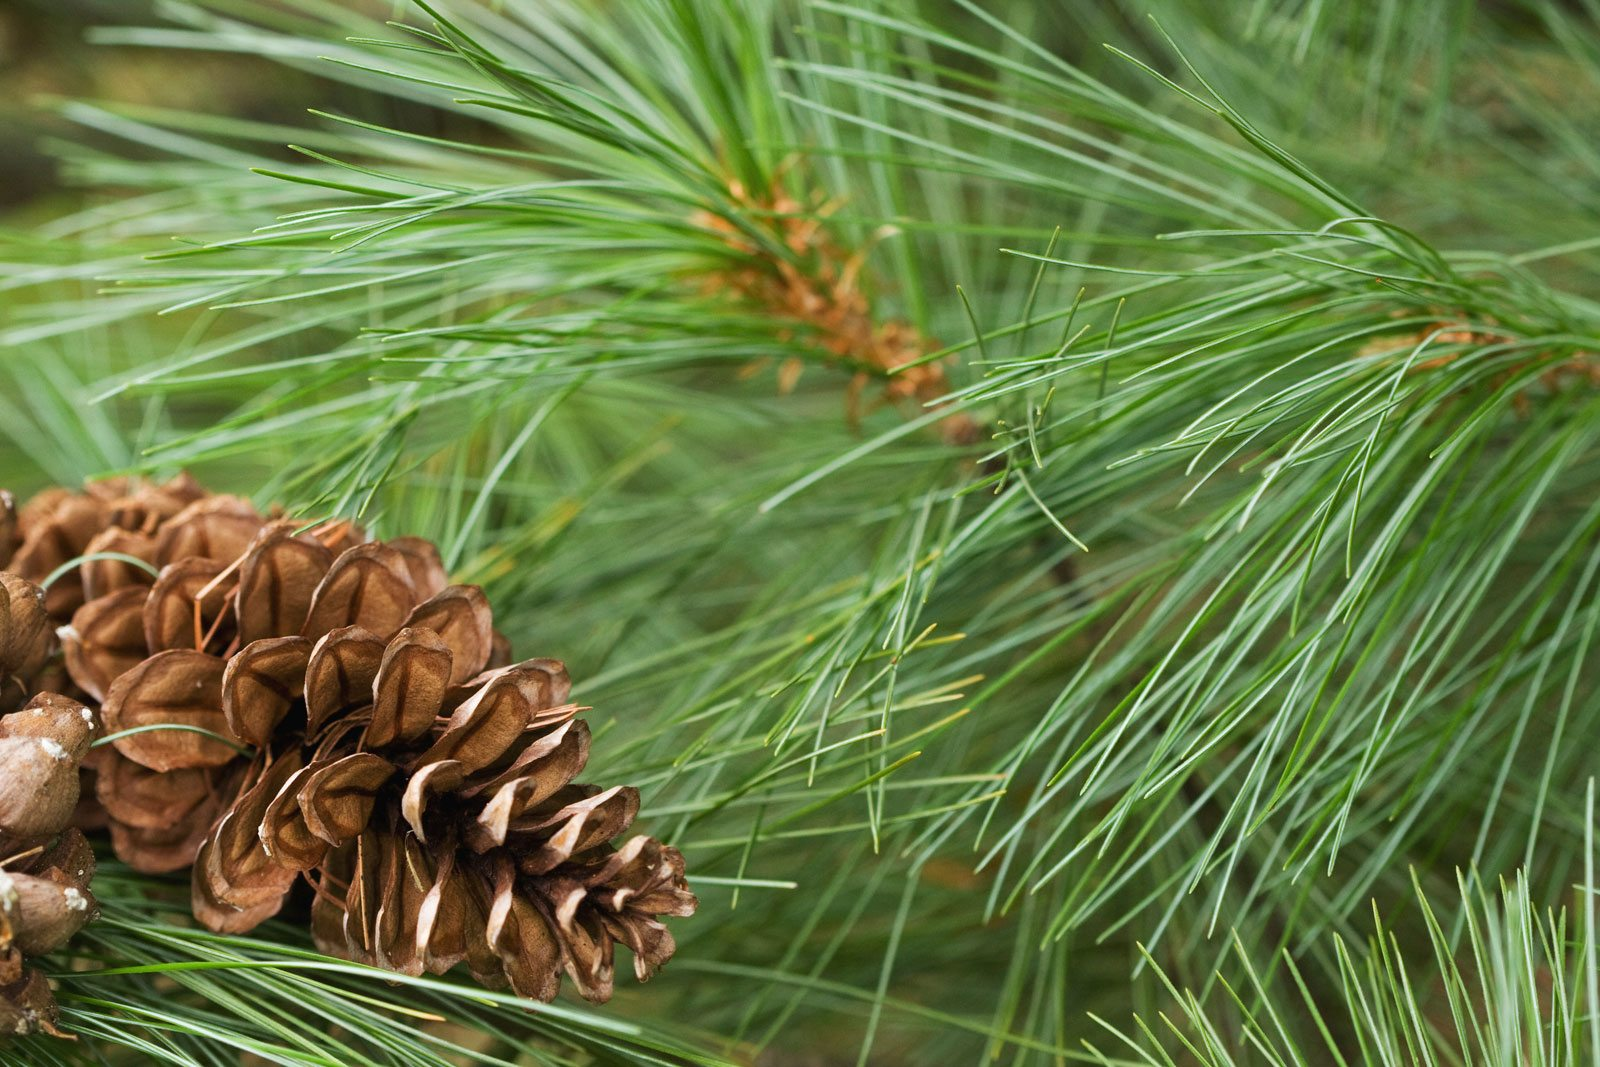 Tips For Planting White Pines: Care Of White Pine Trees In ...